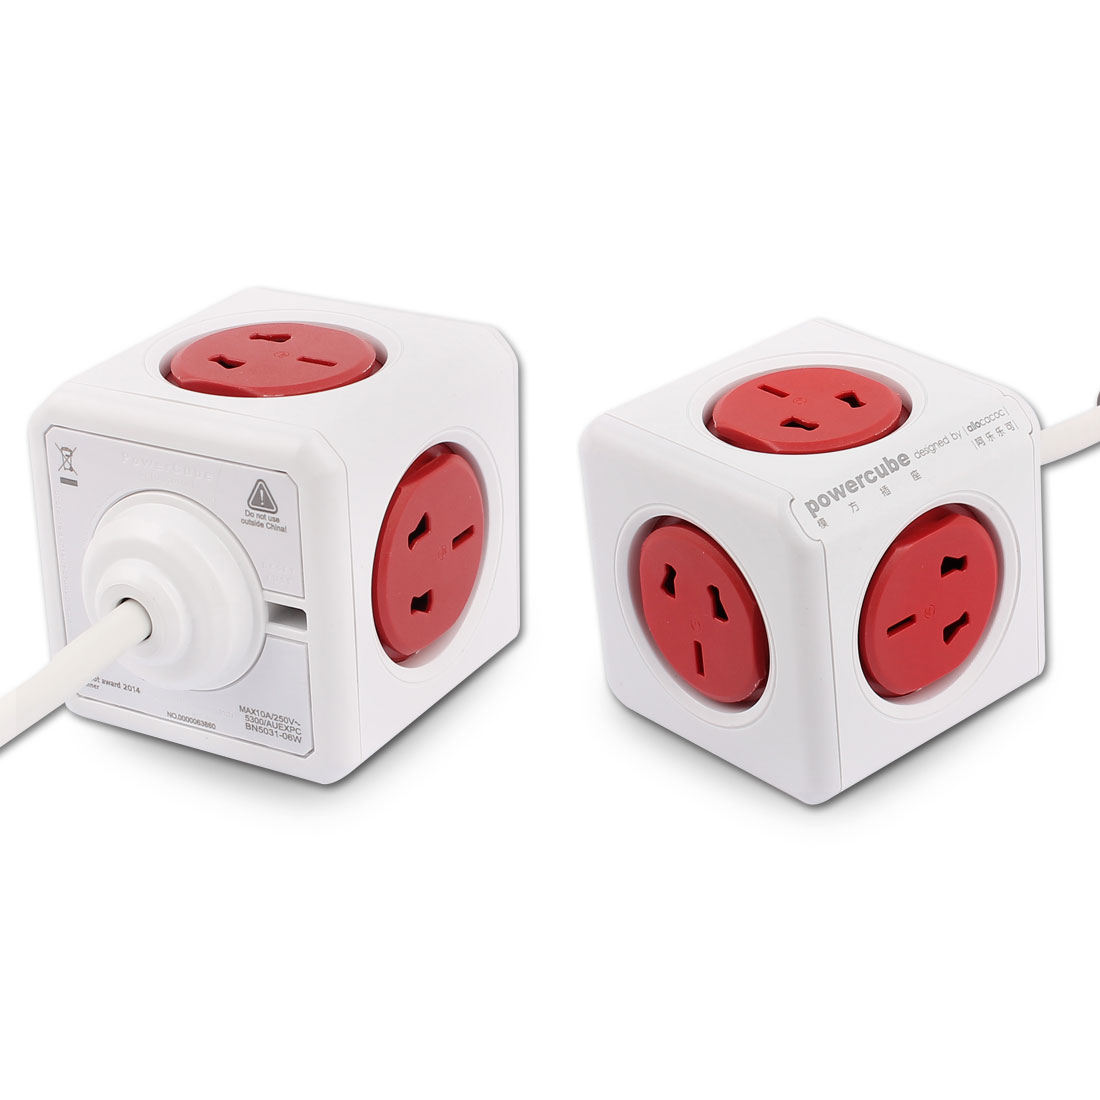 AC 250V AU Plug Desktop Cube Allocator 5 Power AU US Sockets 1.5 Meter Long Cable Red